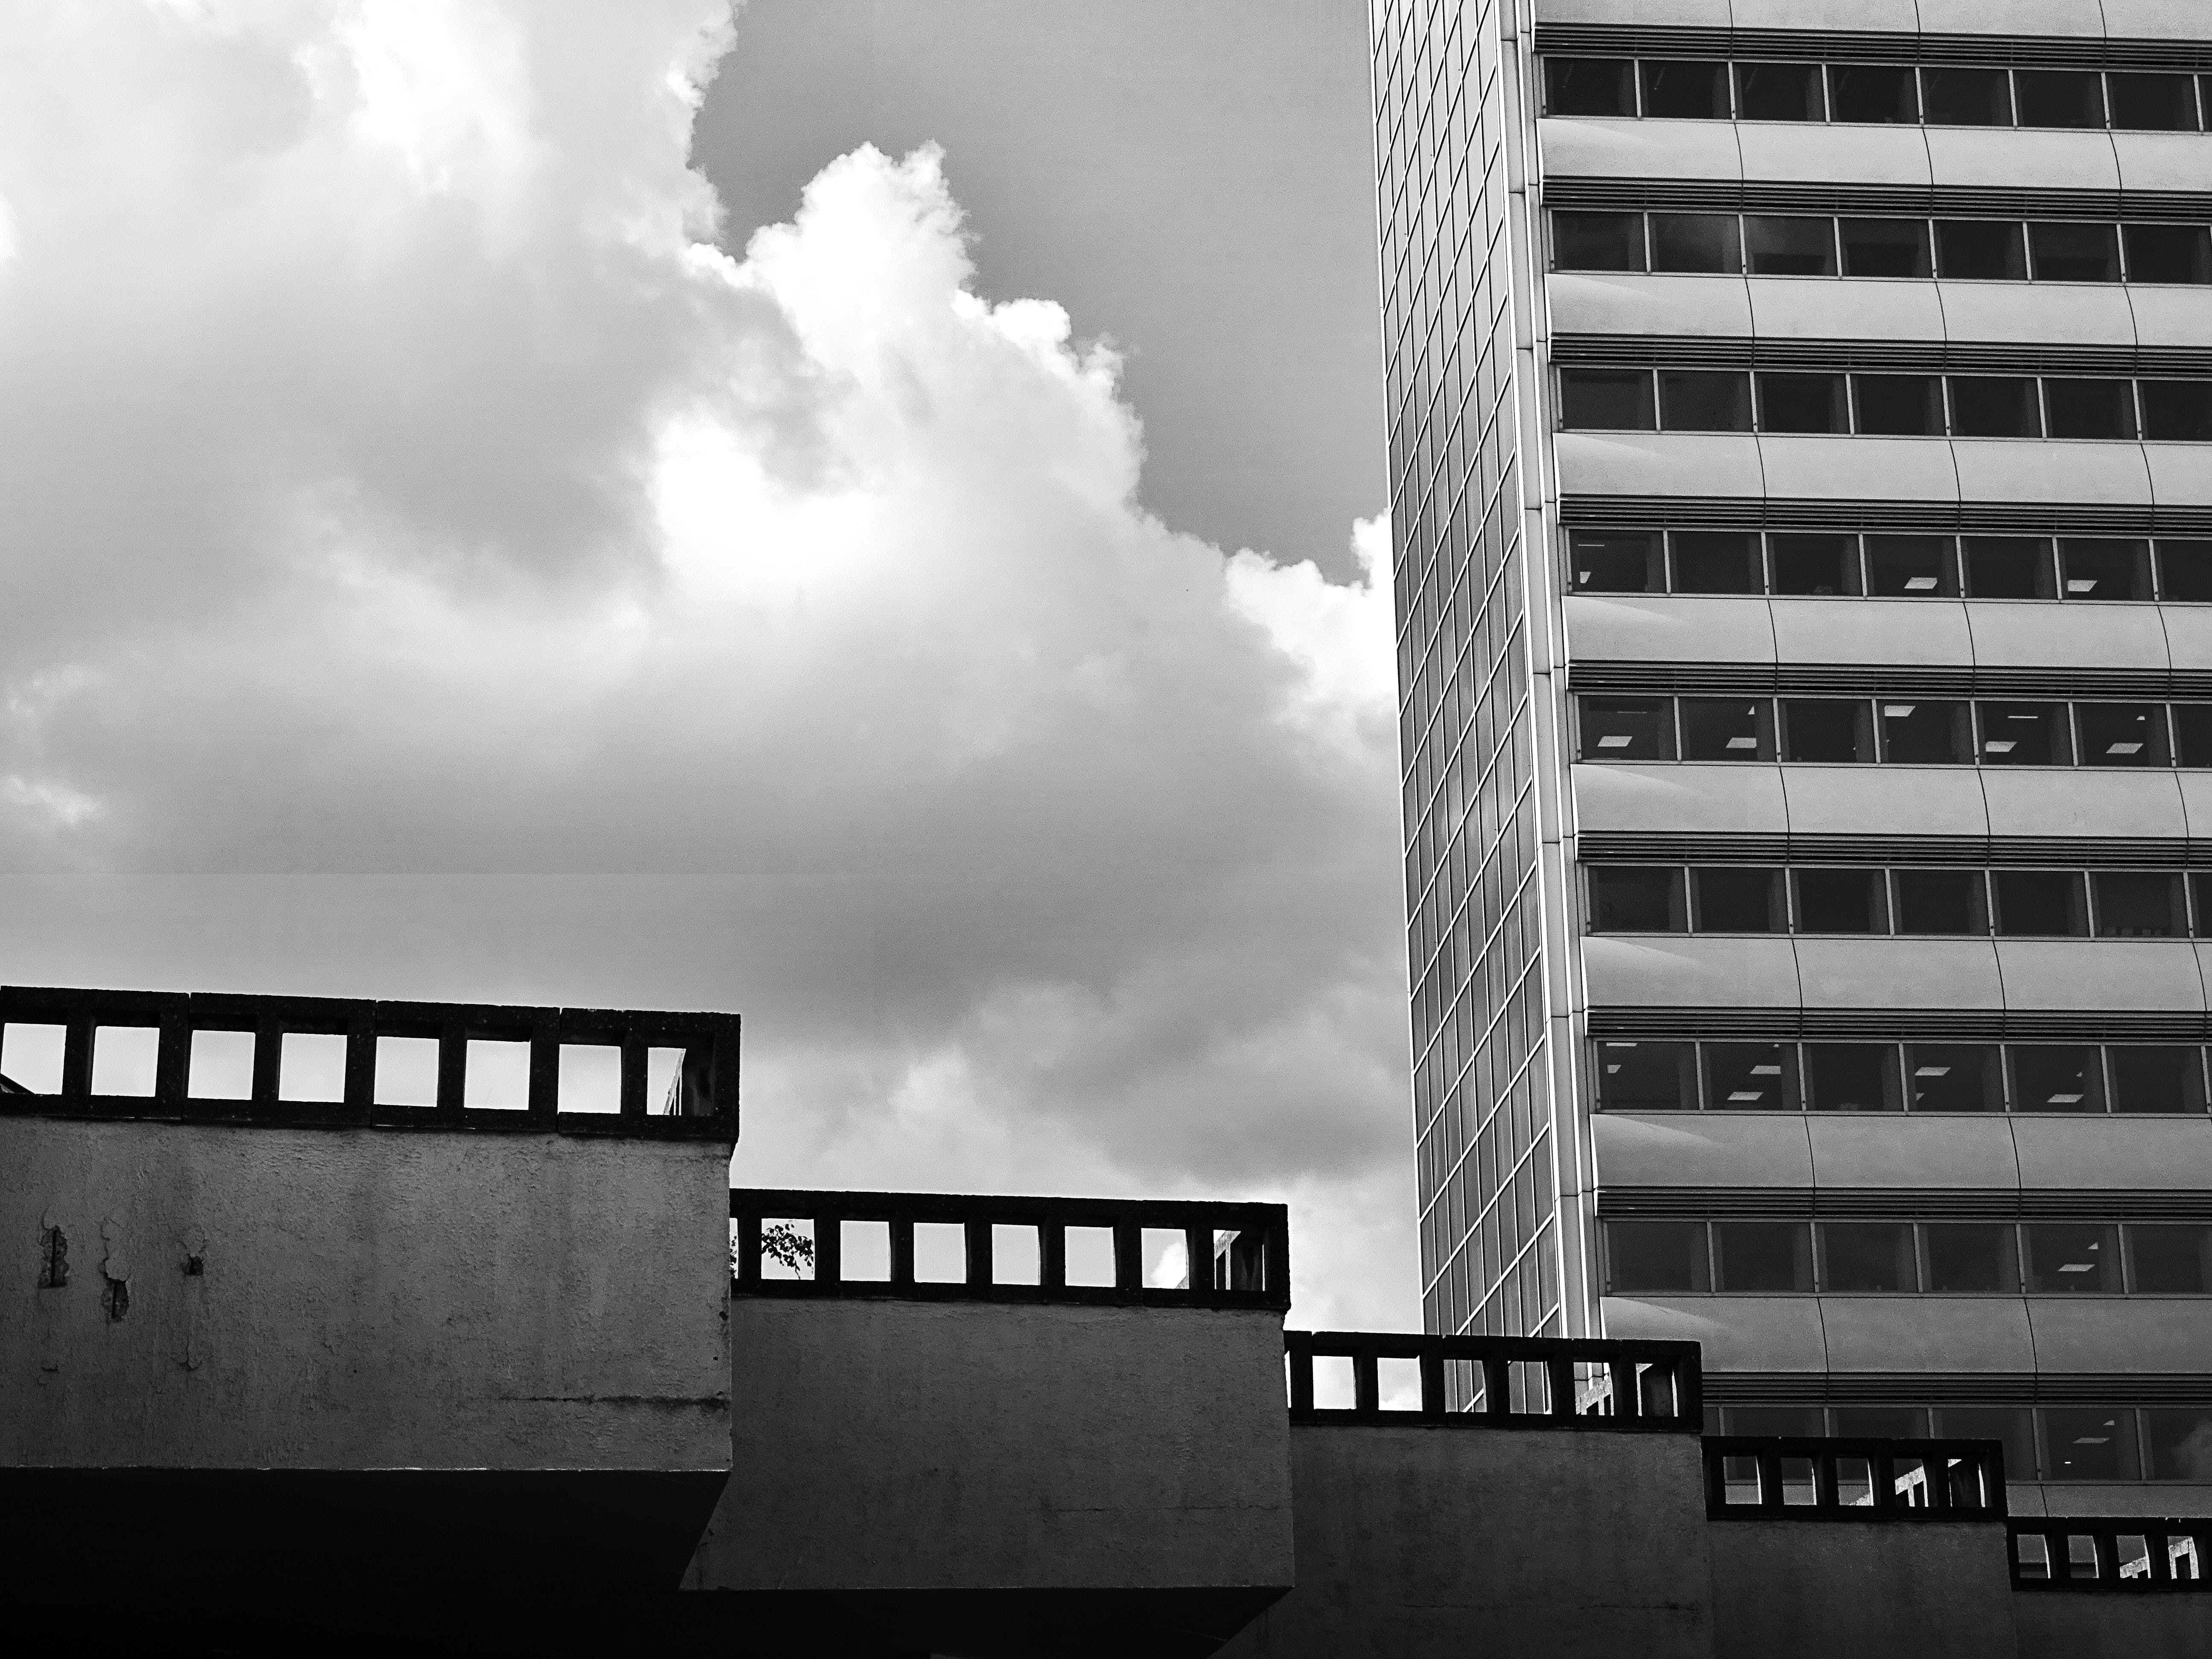 Grayscale Photography of Building